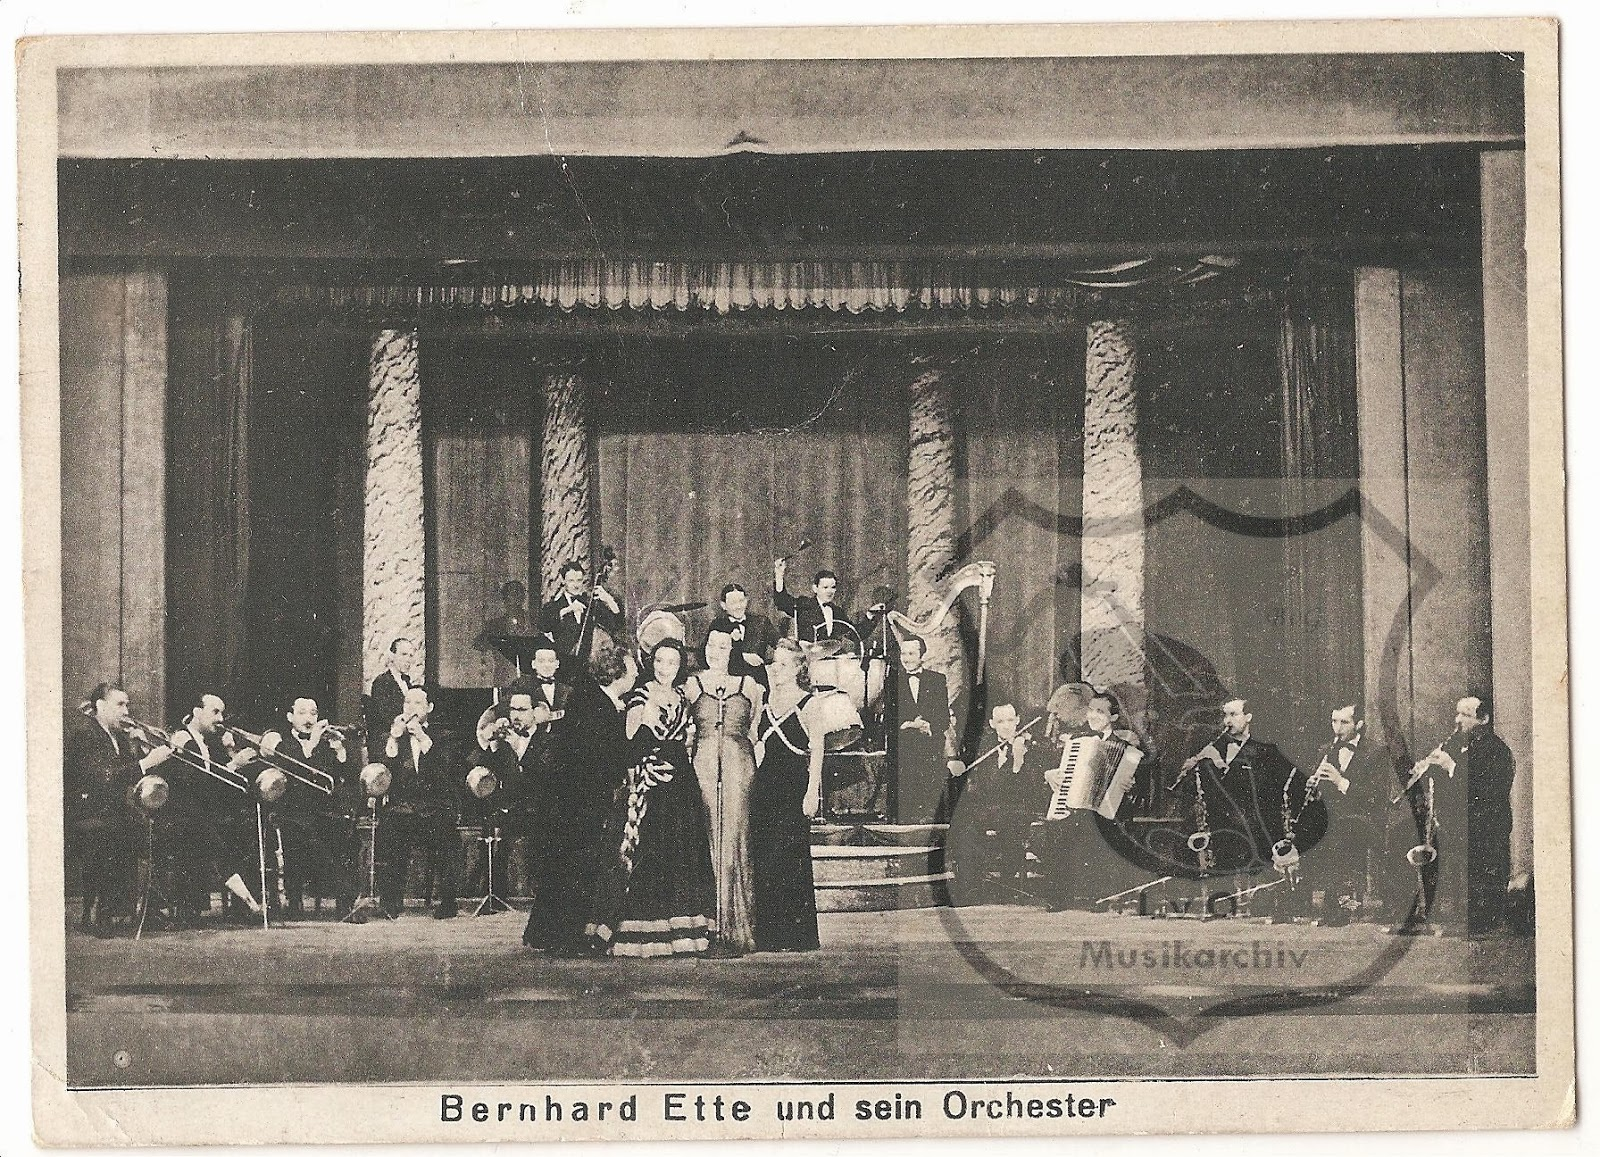 Photograph of Bernhard Ette and his Orchestra - possibly taken in  the studios in Berlin-Schöneberg. Photograph from the Grammophon-Platten website  which suggests that the three ladies in the foreground are (left to right):  Claire Bauerle, Gisela Katt, Madeleine Lohse